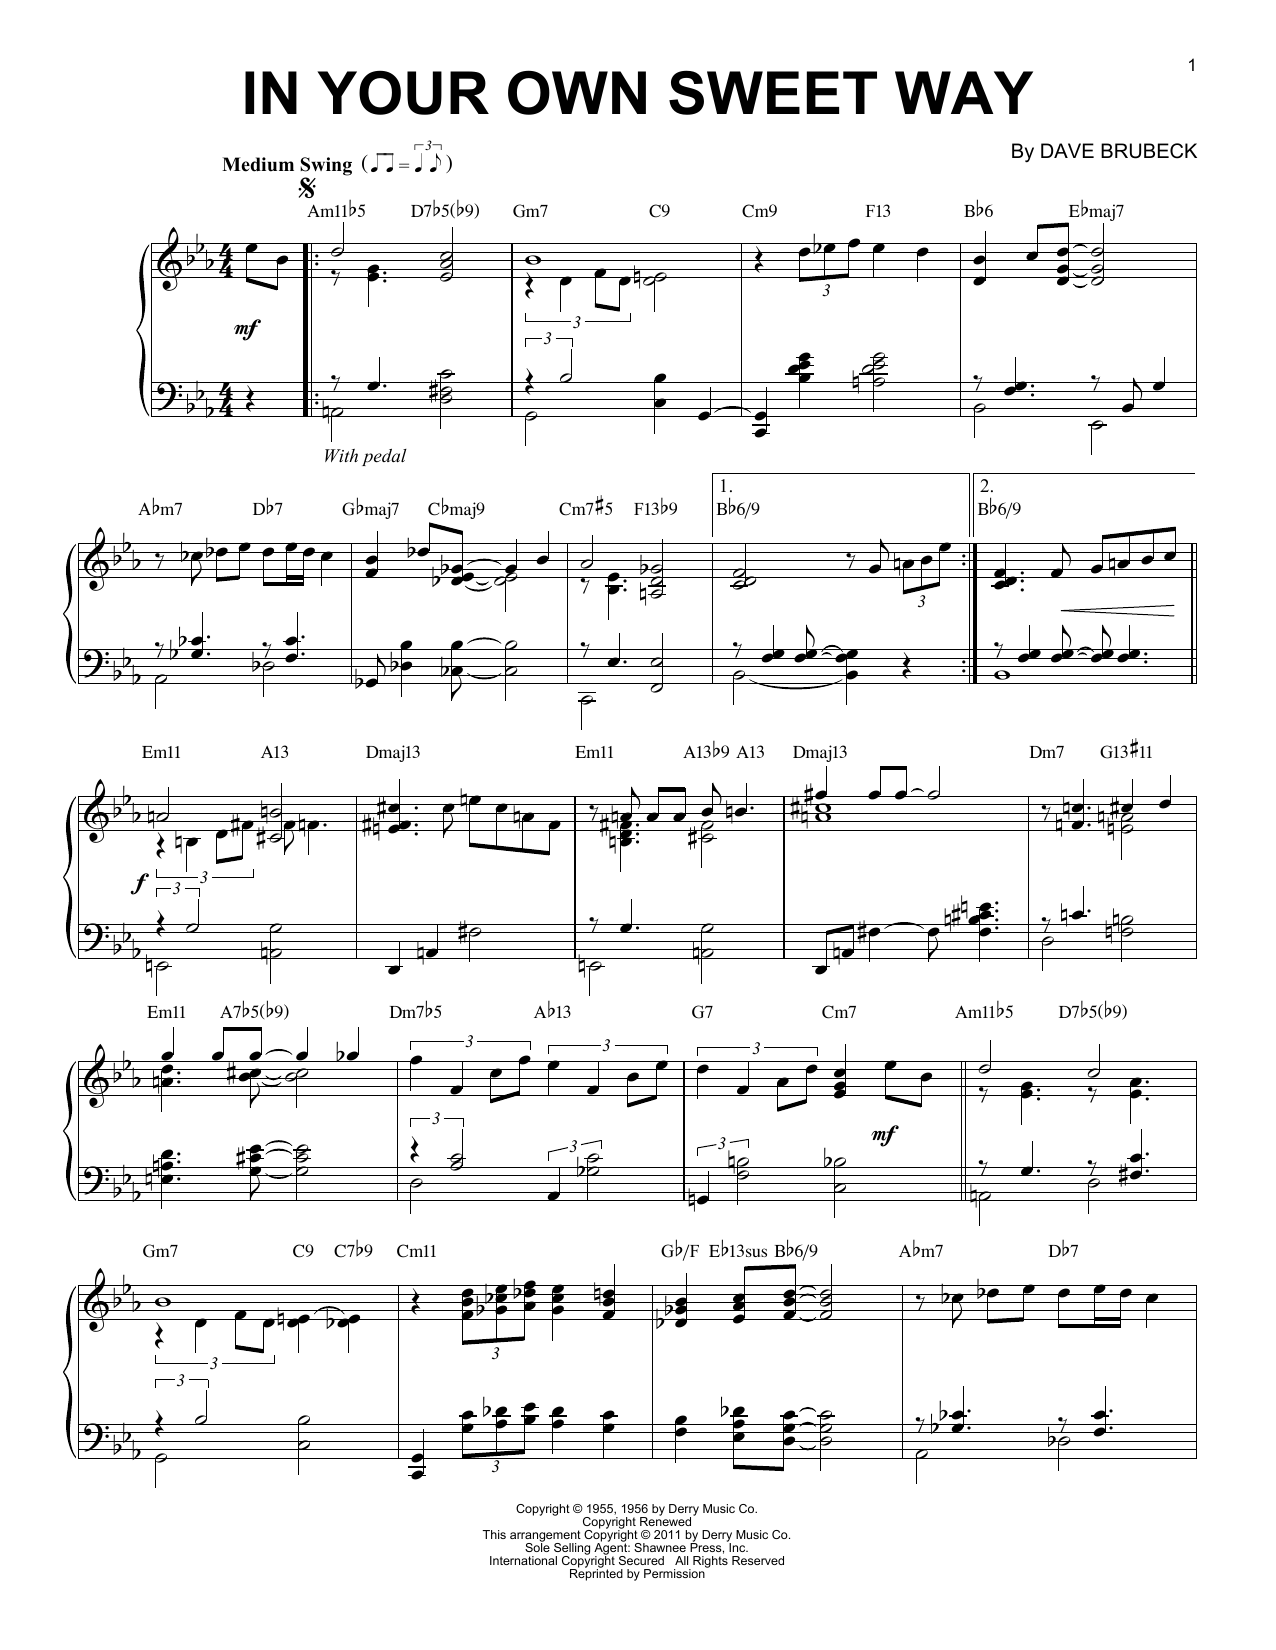 In Your Own Sweet Way sheet music for piano solo by Dave Brubeck